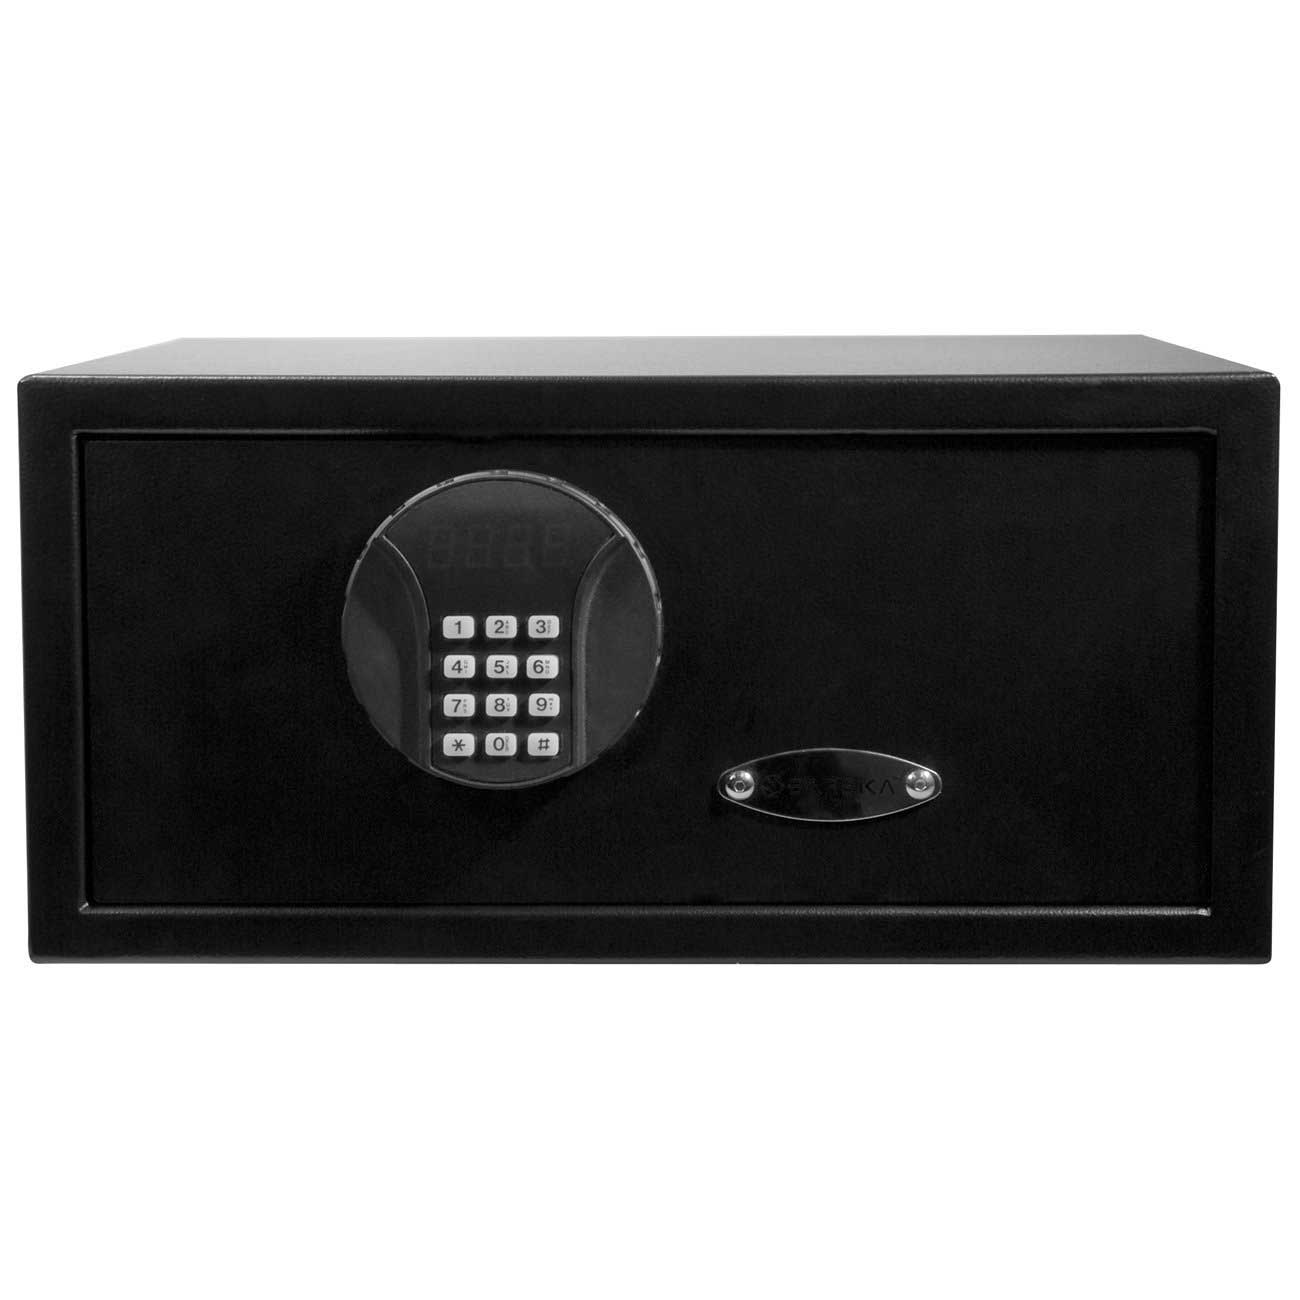 barska ax11618 digital keypad safe gsax11618. Black Bedroom Furniture Sets. Home Design Ideas